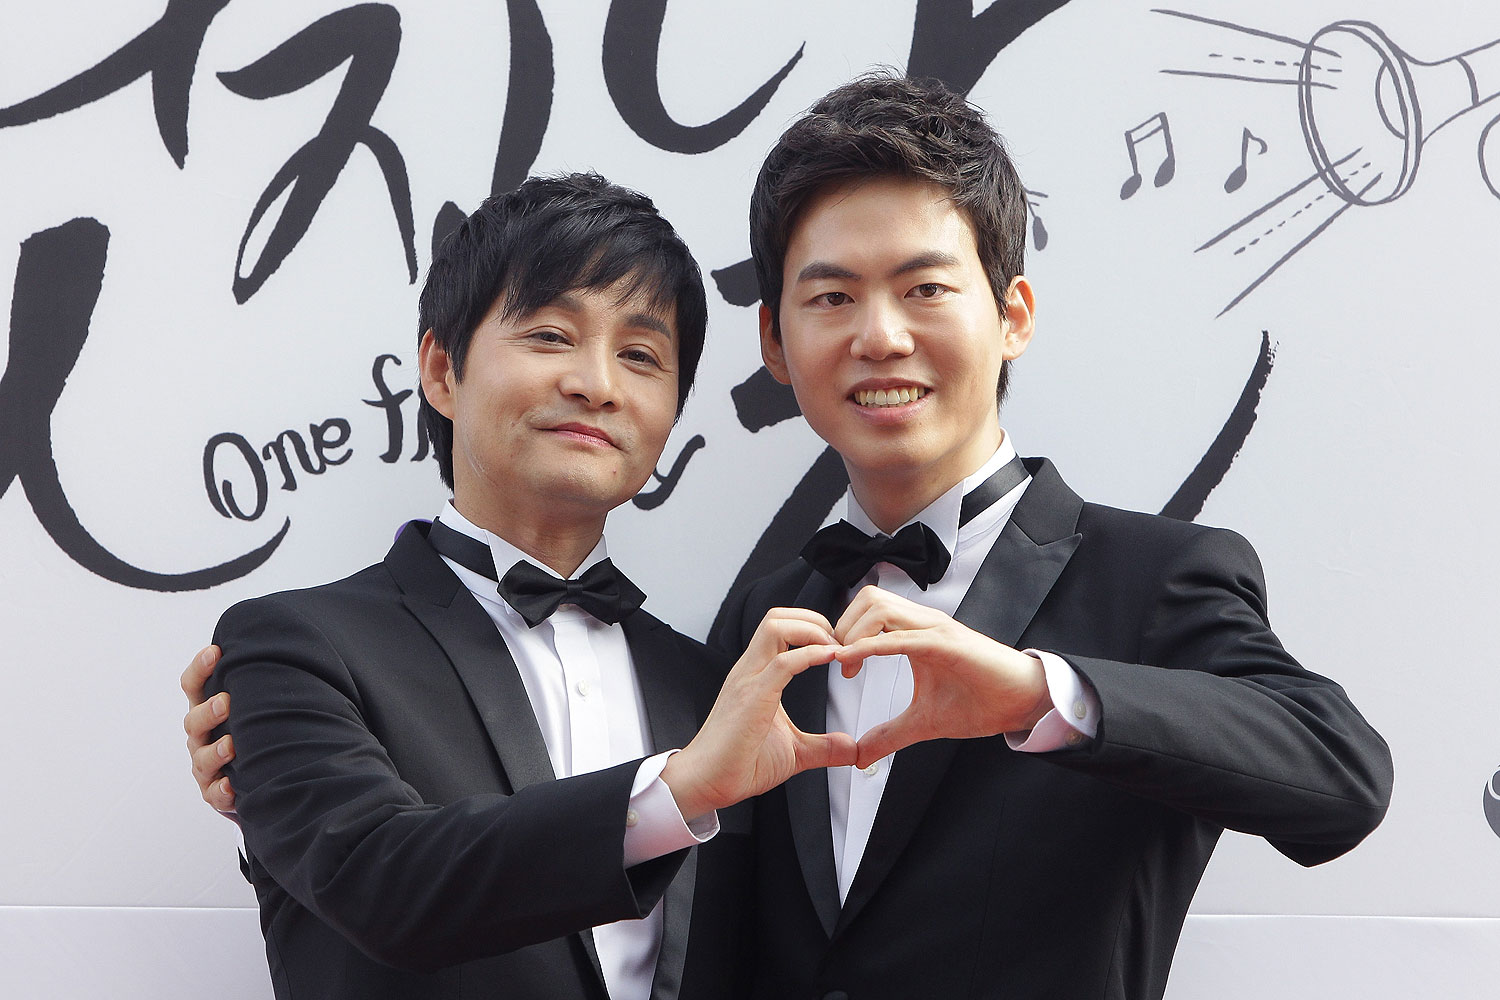 Director Kim Jho Kwang-Soo and Kim Seung-Hwan pose before their wedding in Seoul in Sept. 2013